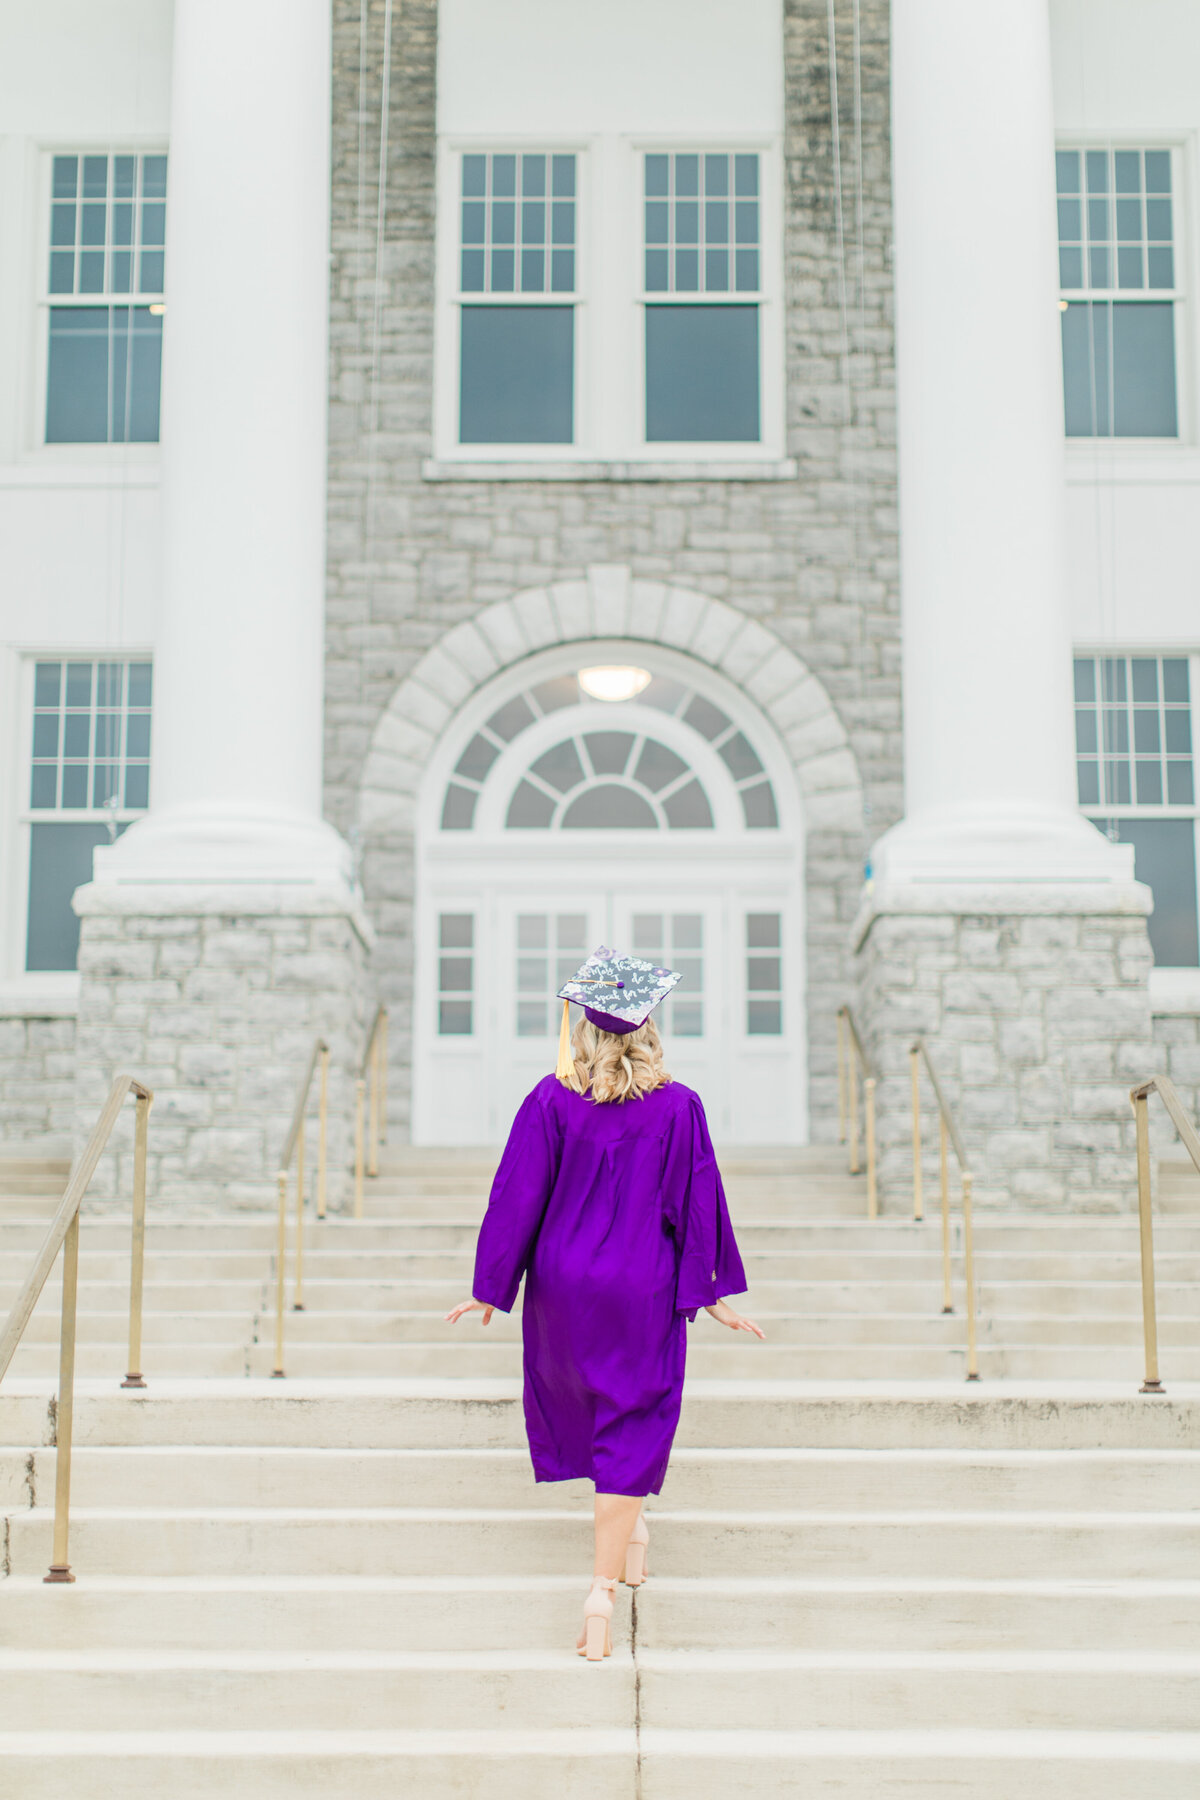 Nicki_JMU_Senior_2020_Angelika_Johns_Photography-1307